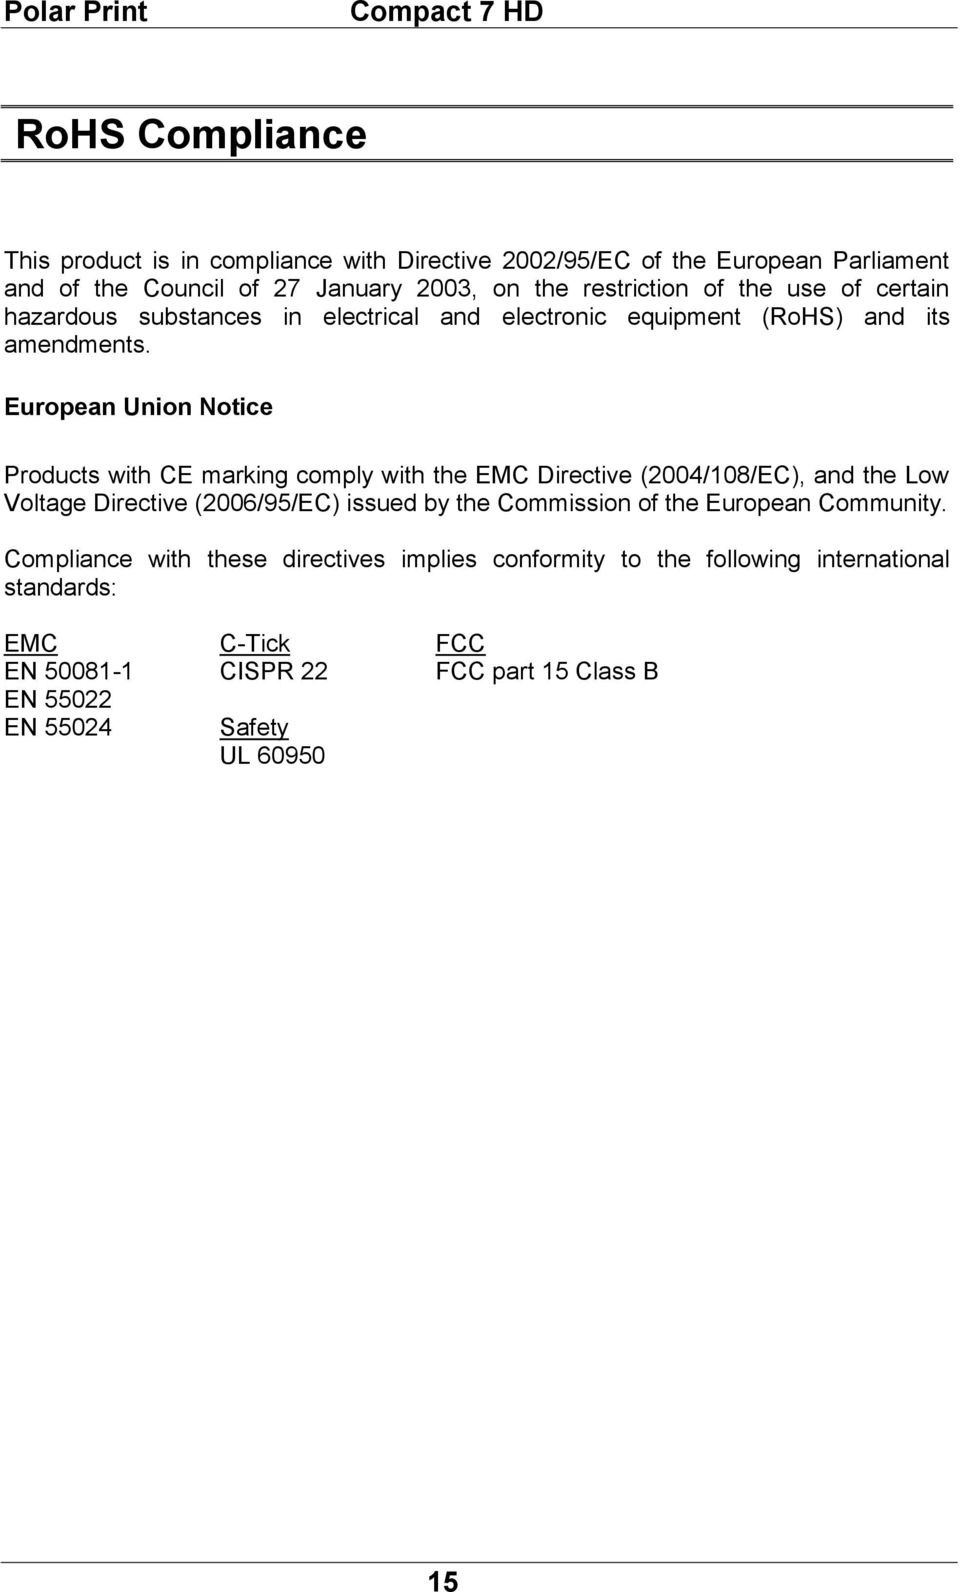 European Union Notice Products with CE marking comply with the EMC Directive (2004/108/EC), and the Low Voltage Directive (2006/95/EC) issued by the Commission